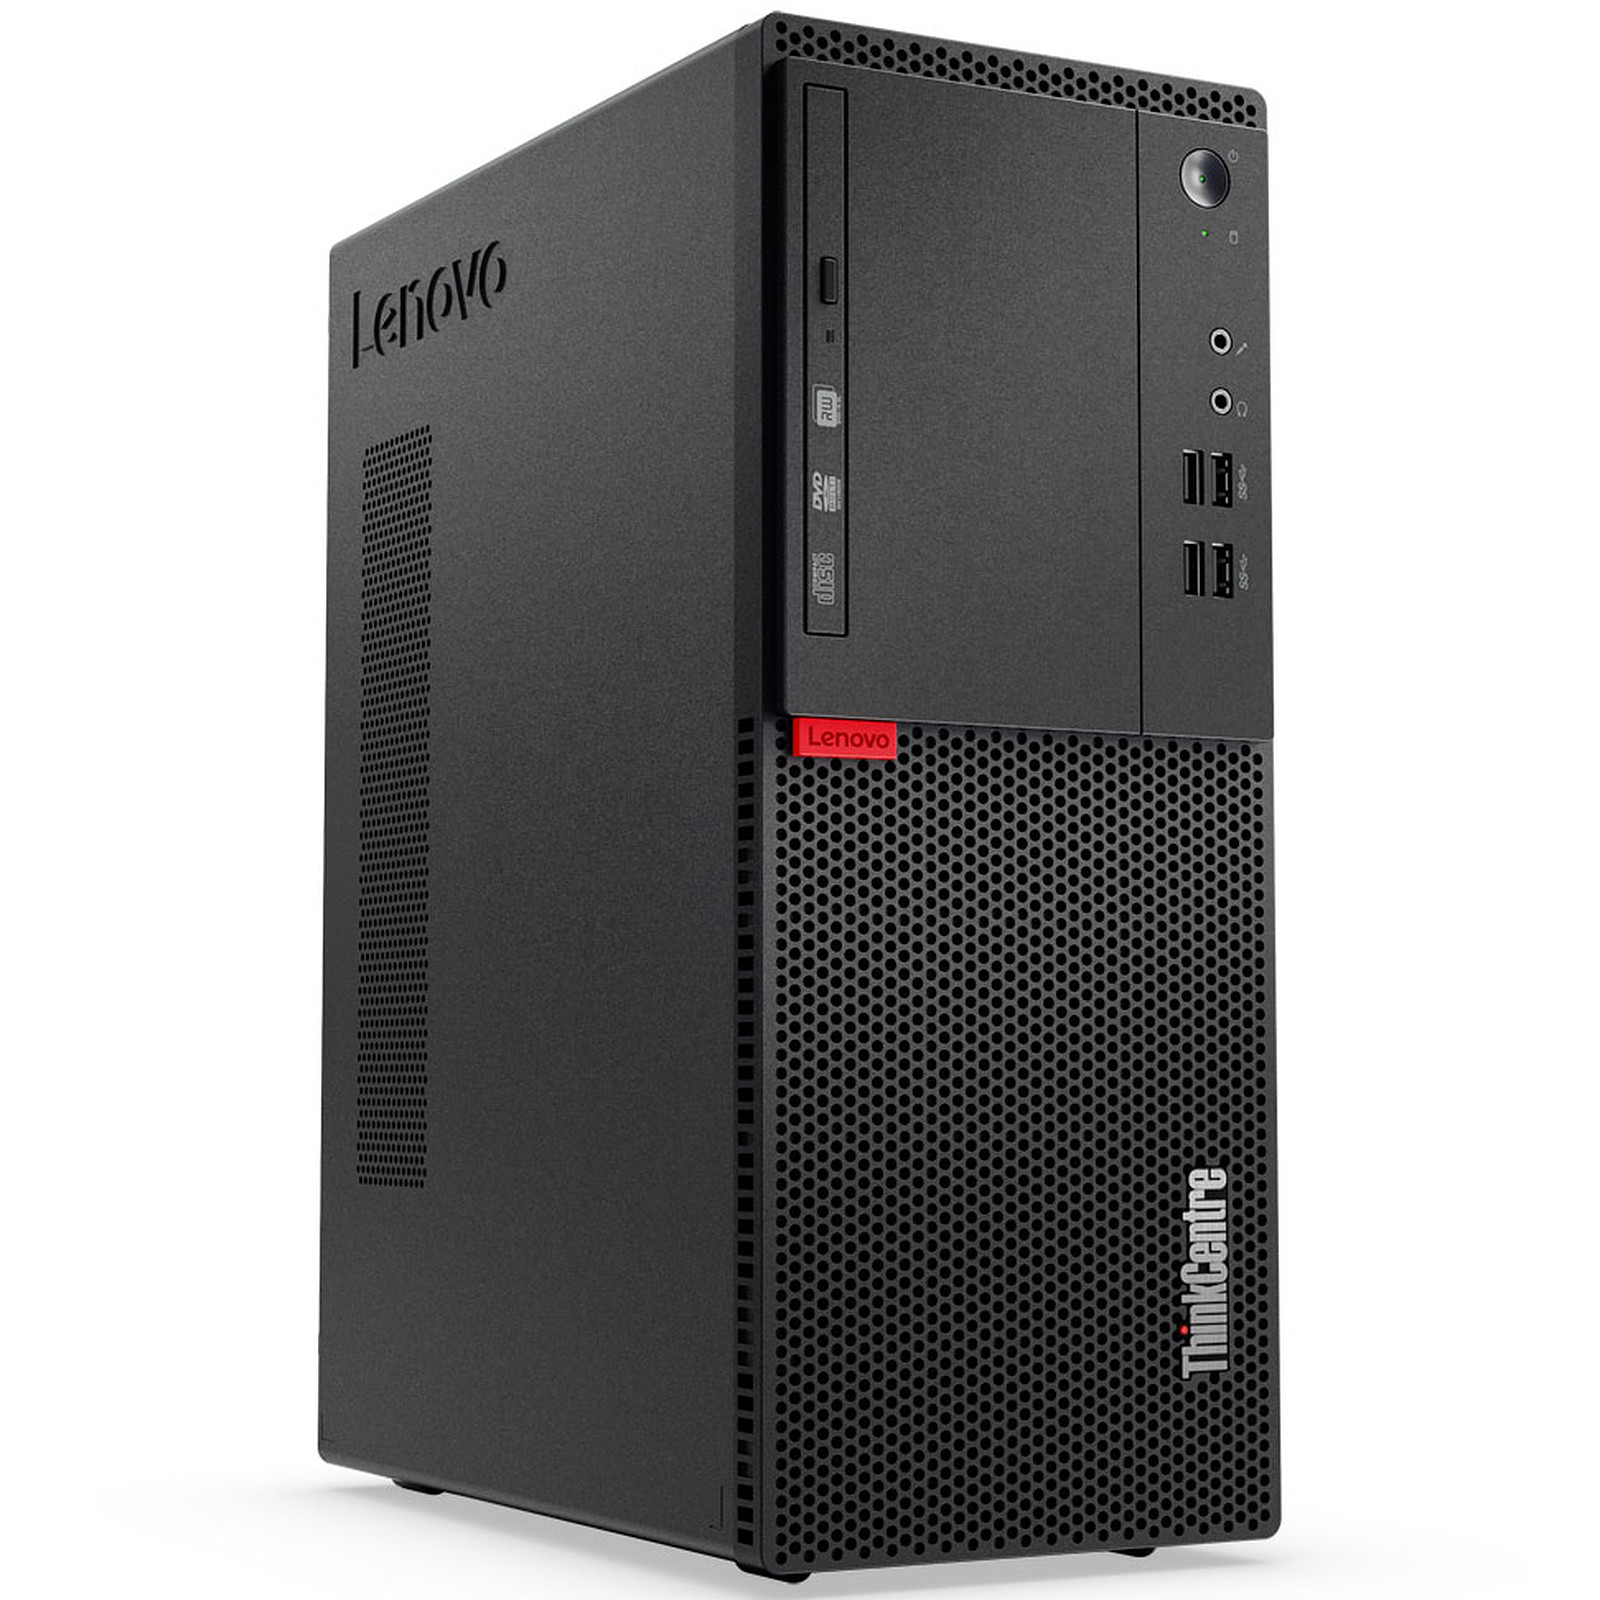 Lenovo ThinkCentre M710 Tour (10M9003XFR)